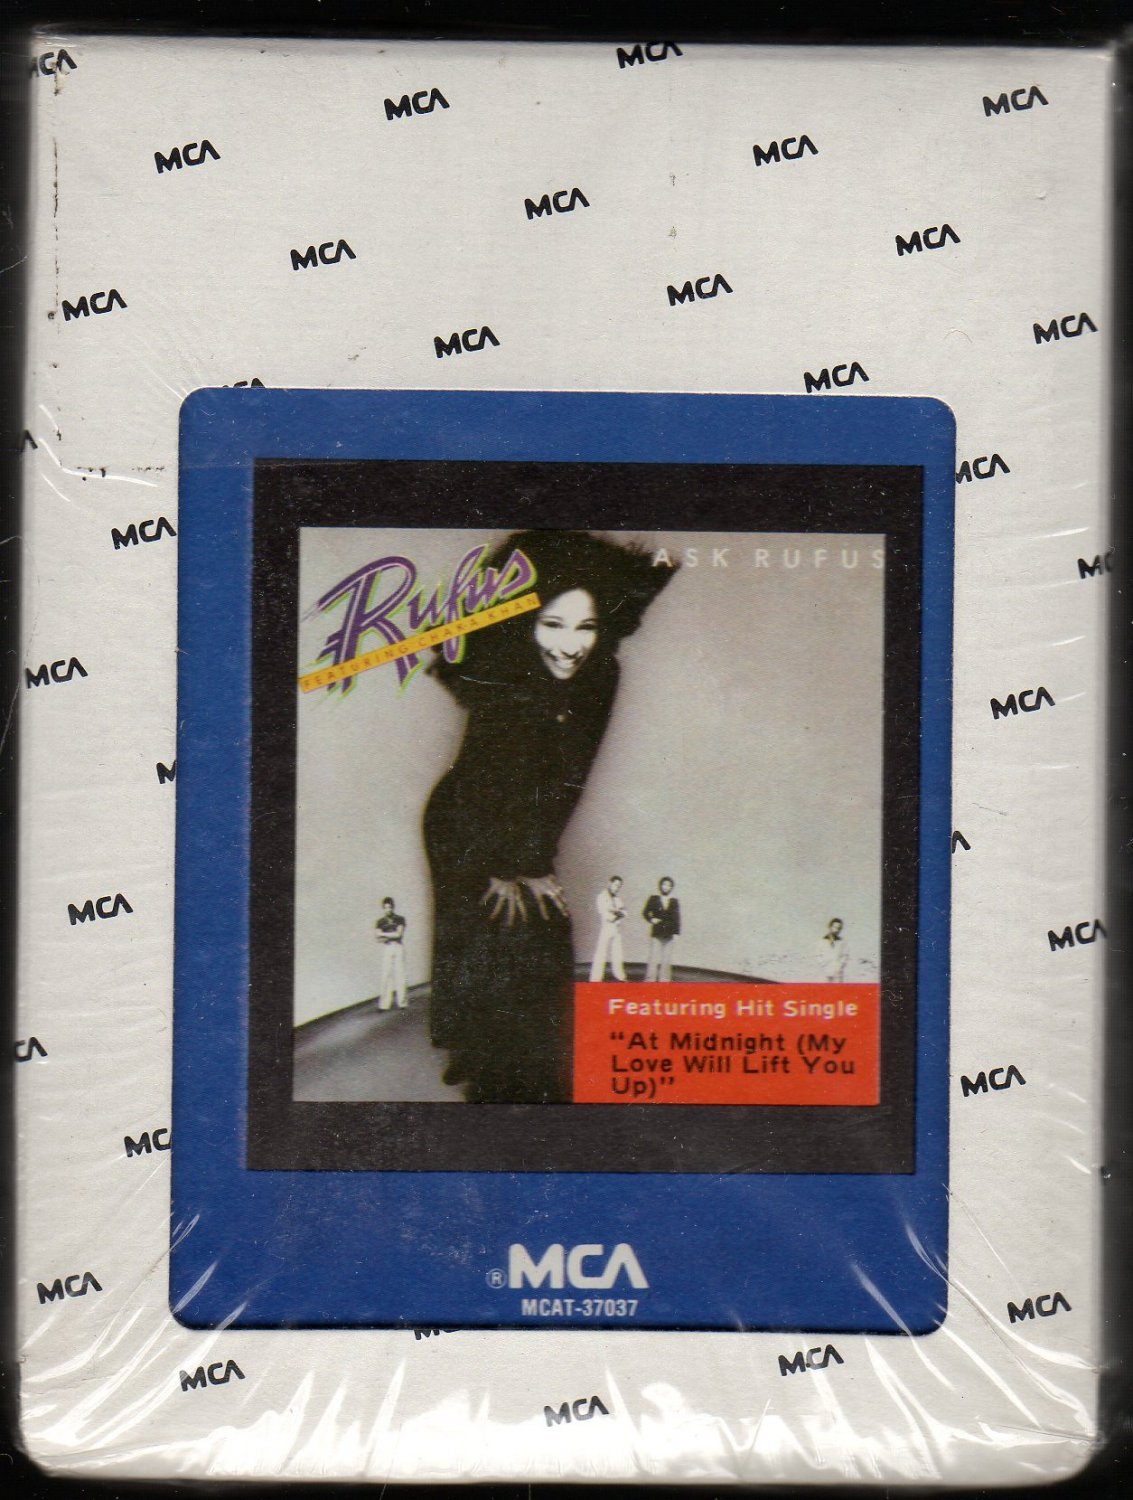 Rufus - Ask Rufus 1977 MCA Sealed A24 8-track tape